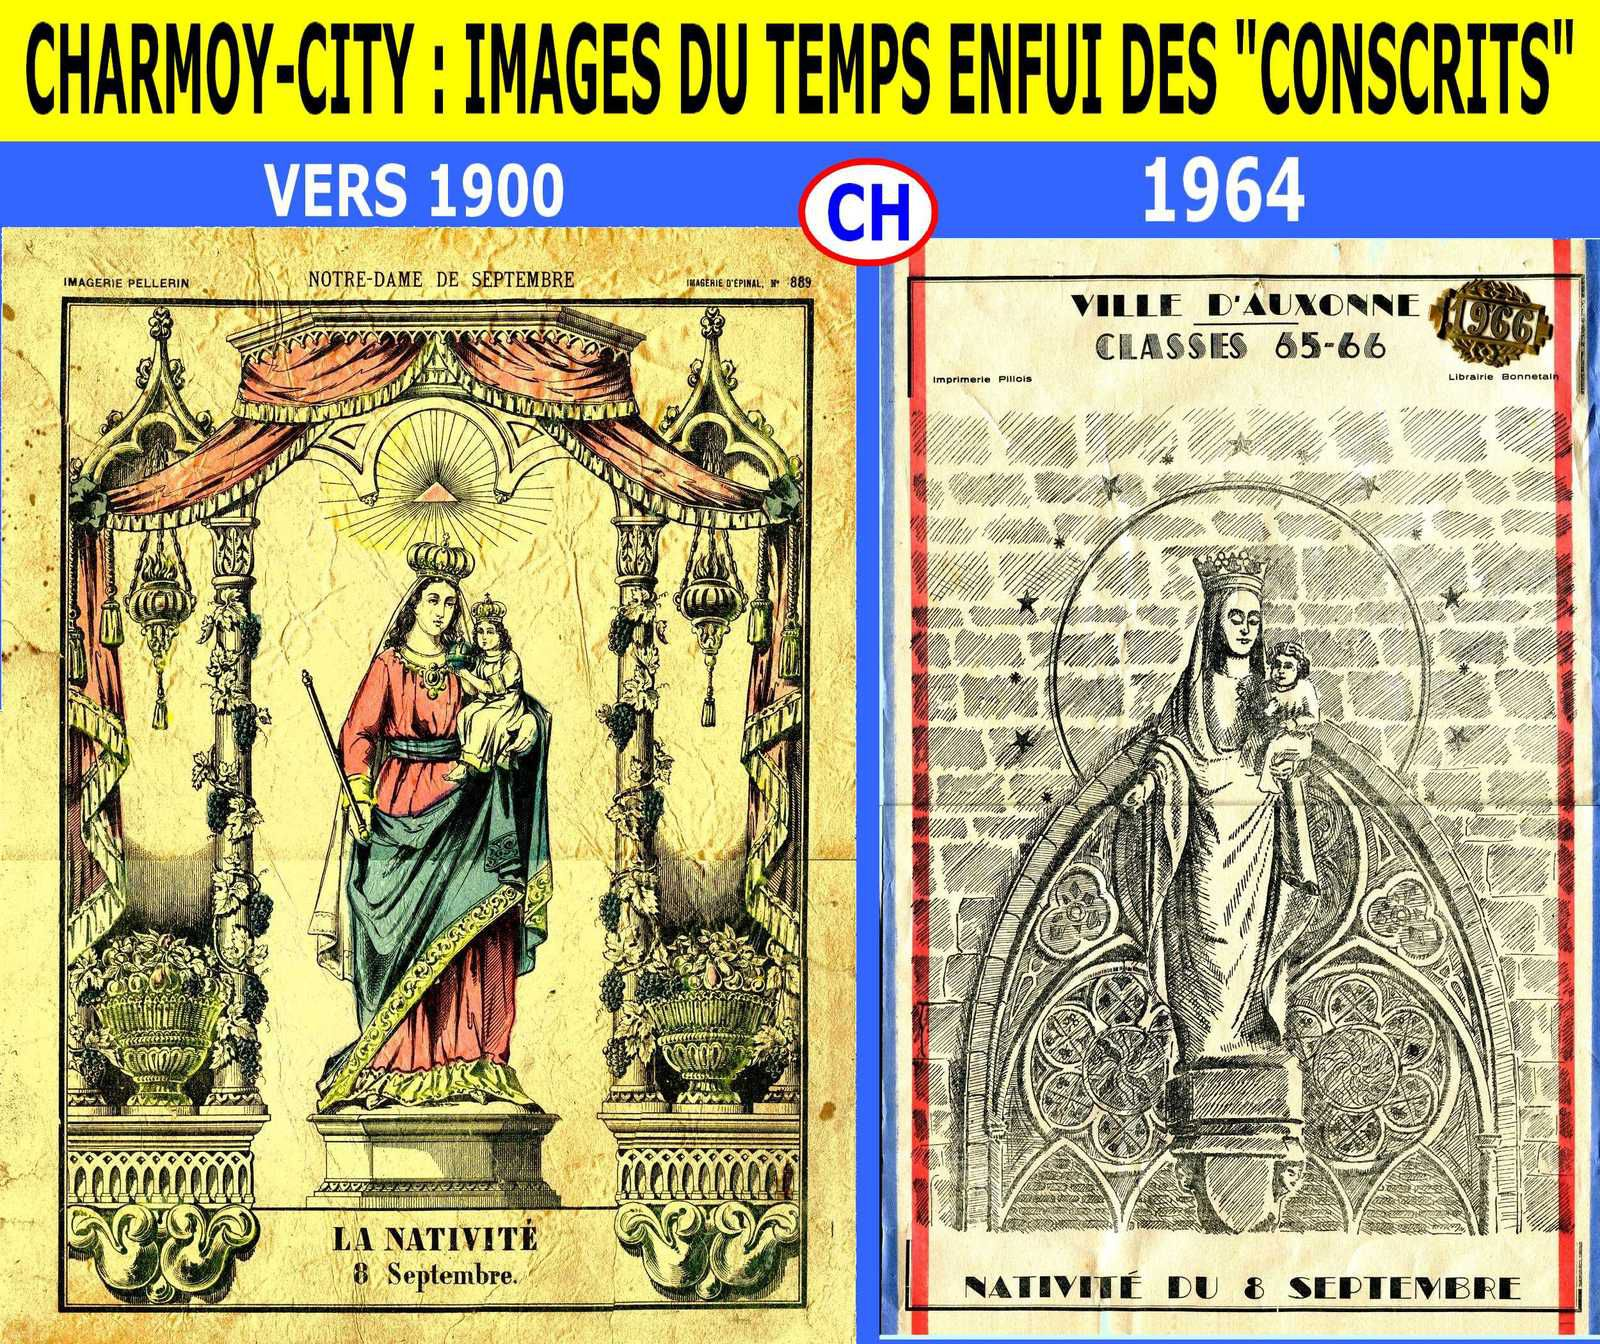 Charmoy-City,images du temps enfui des Conscrits.jpg